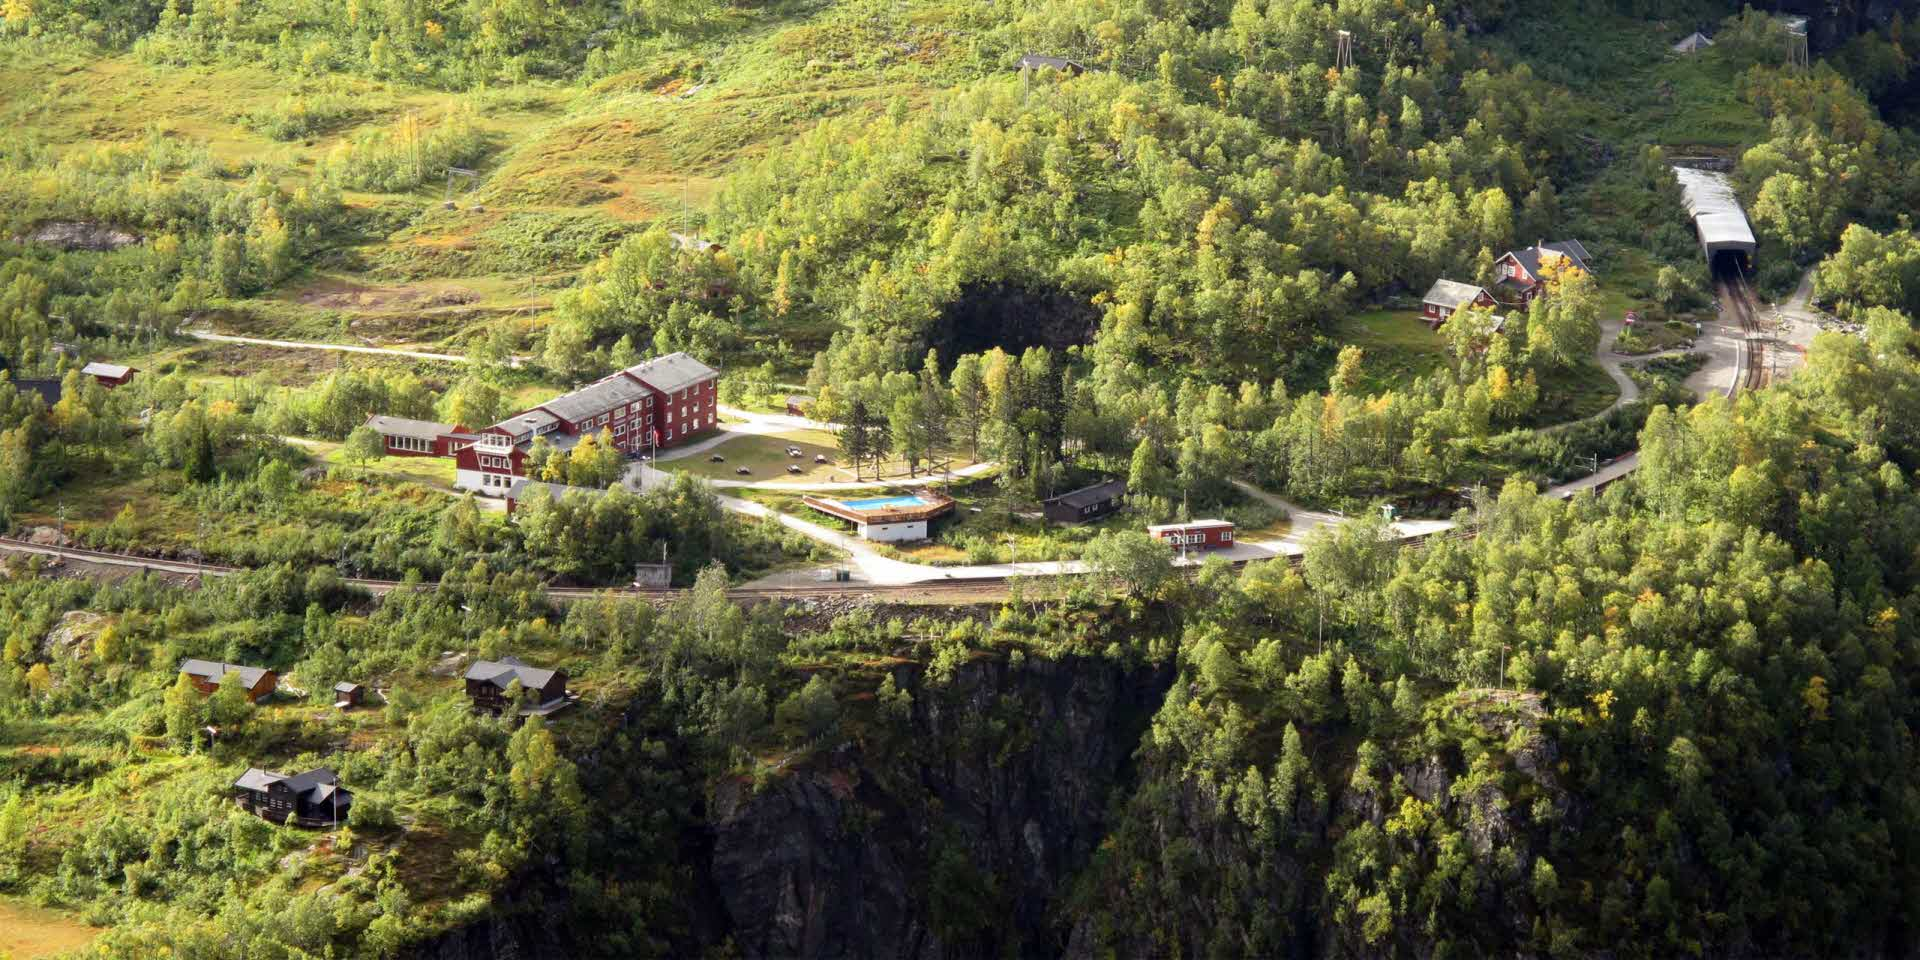 Vatnahalsen and the surroundings seen from above in summer